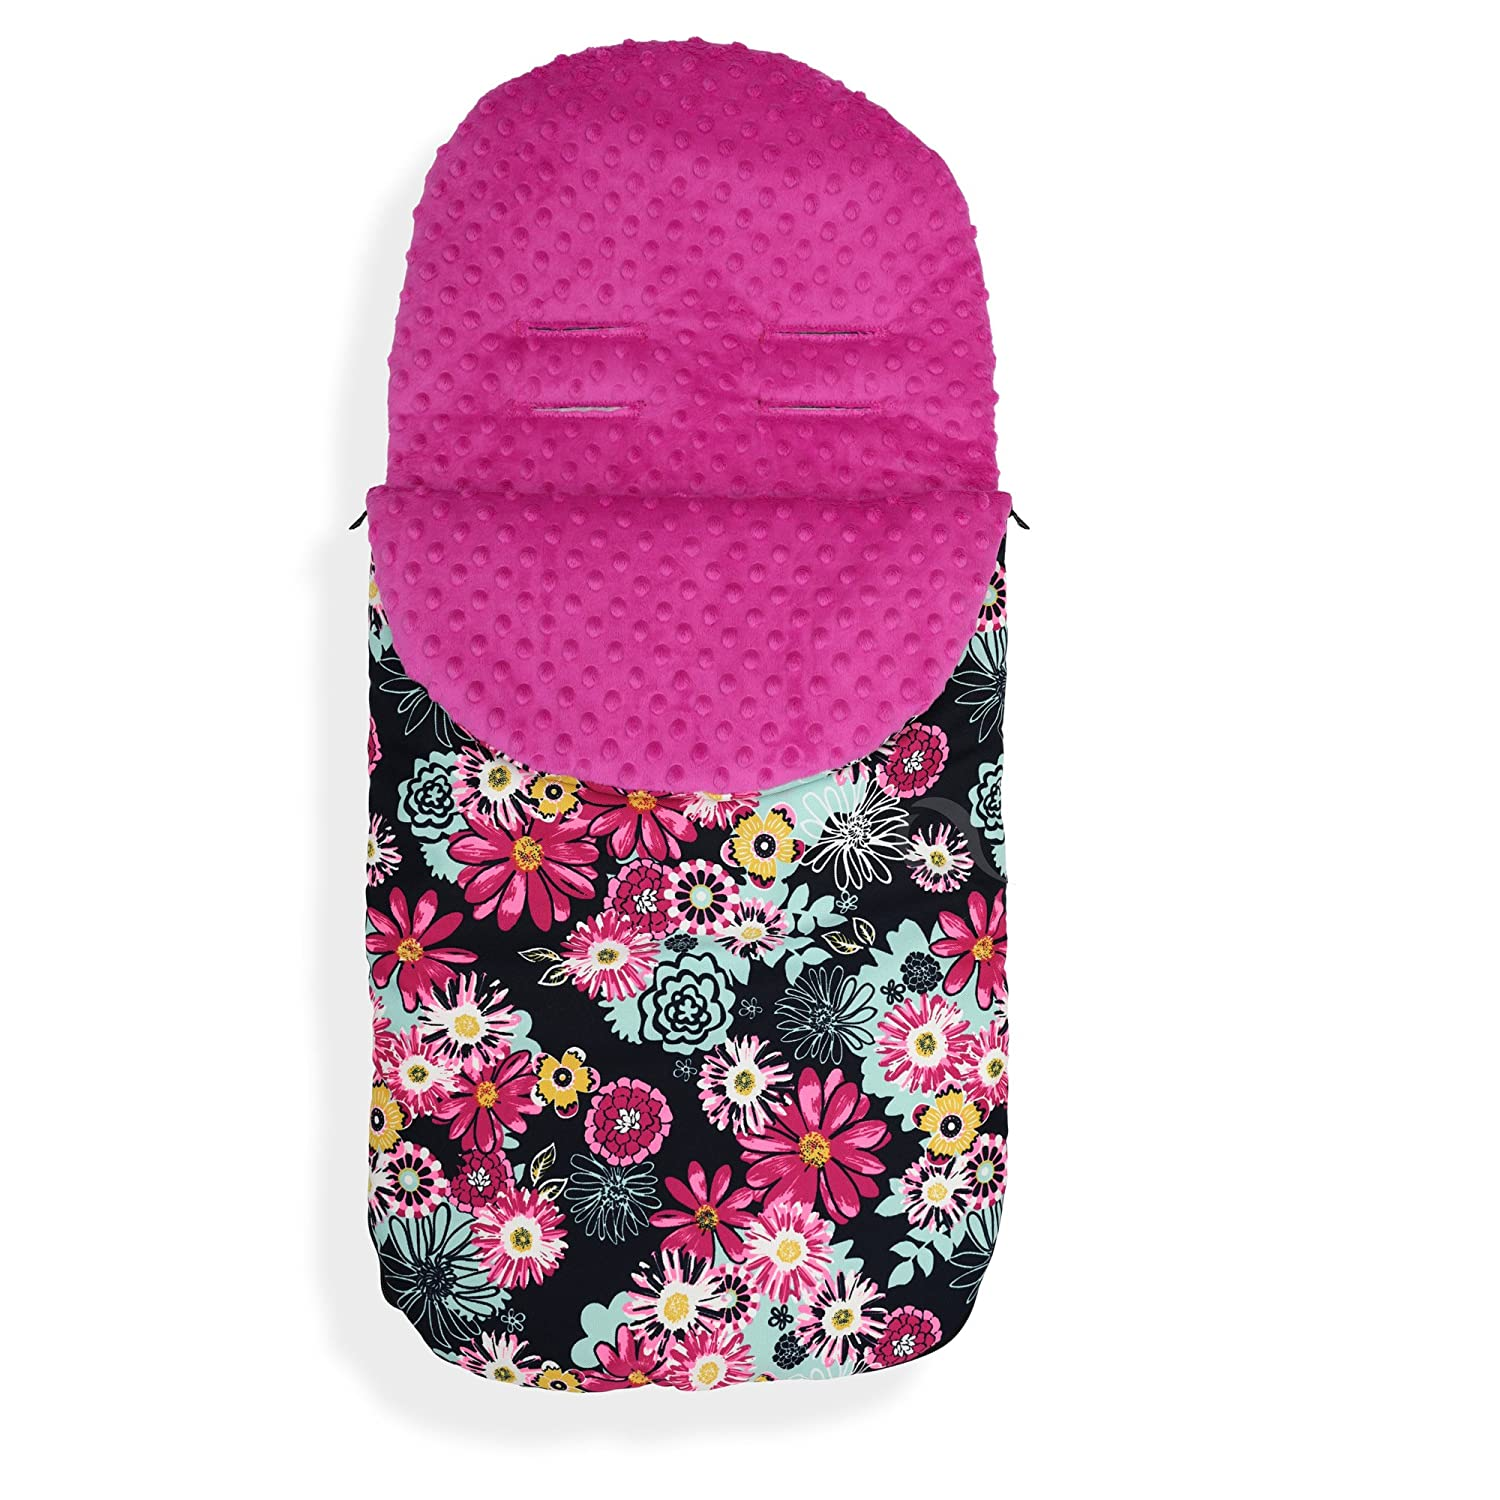 Baby Stroller cosy toes Liner Buggy Padded Luxury Foot muff Cotton Universal M hearts //grey minky